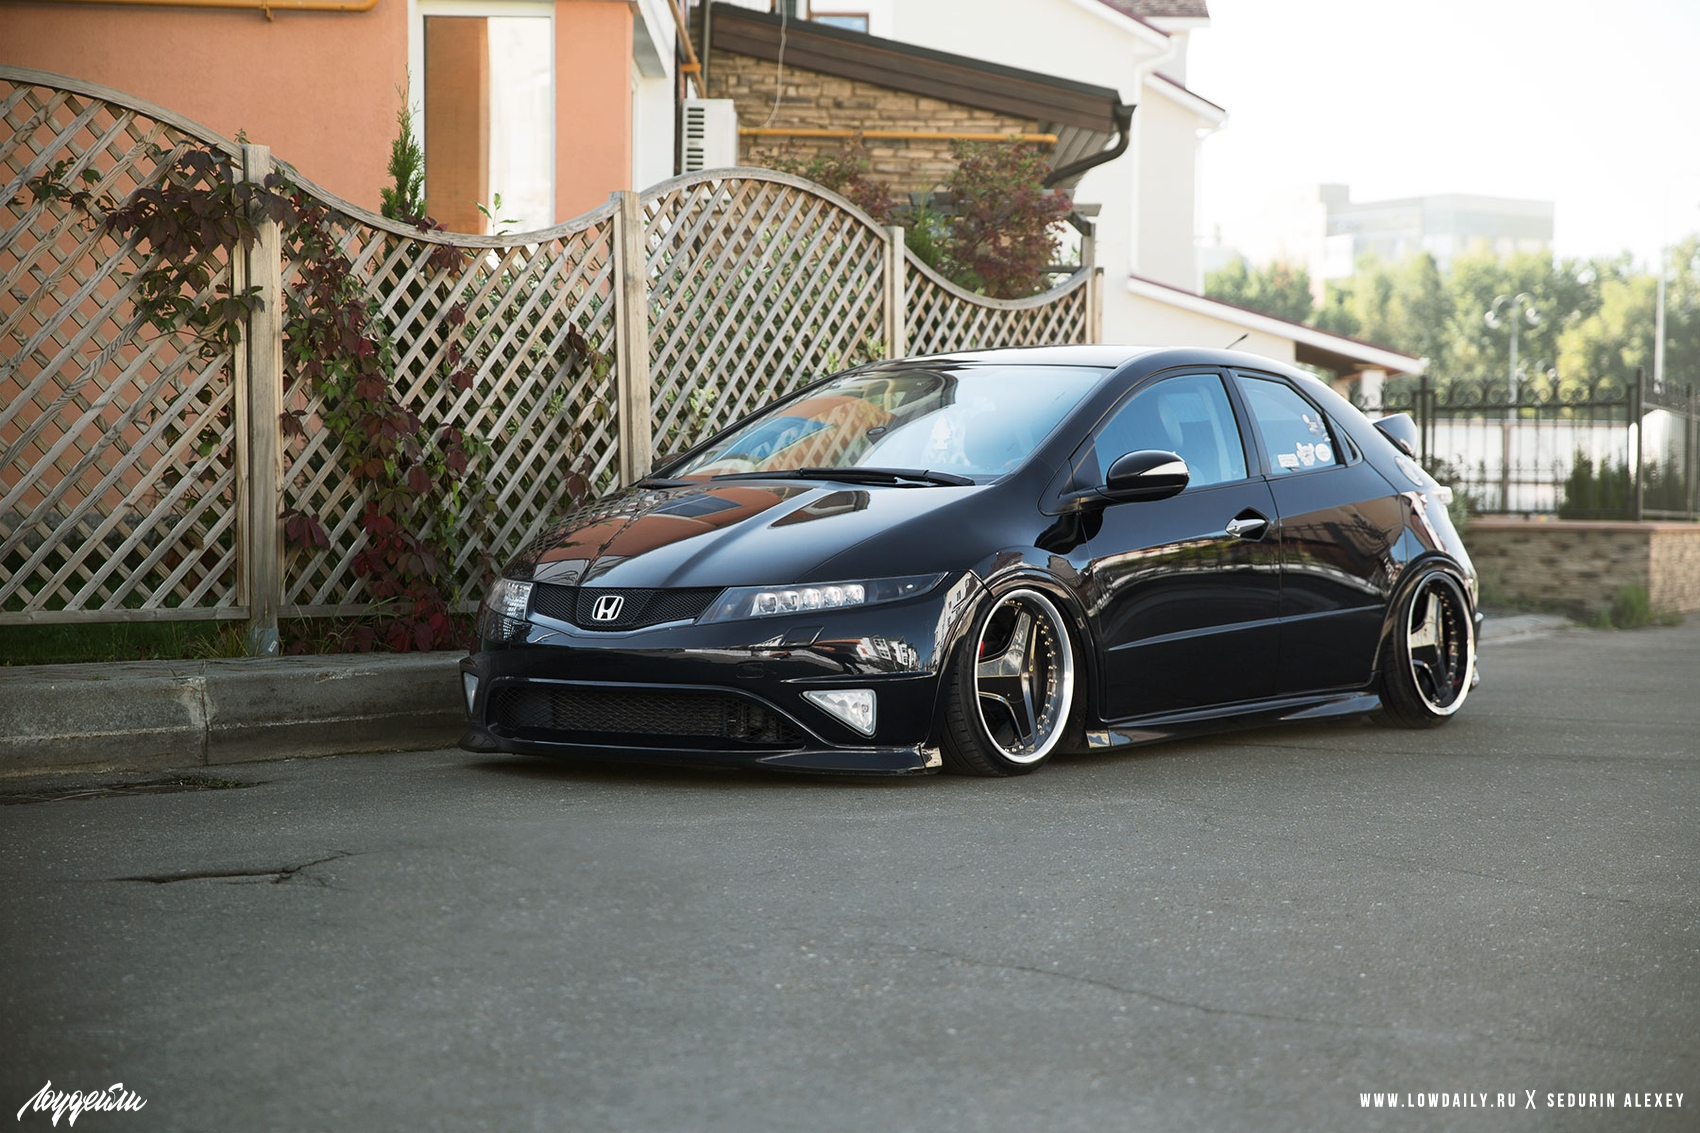 Honda Civic Space 854A9089